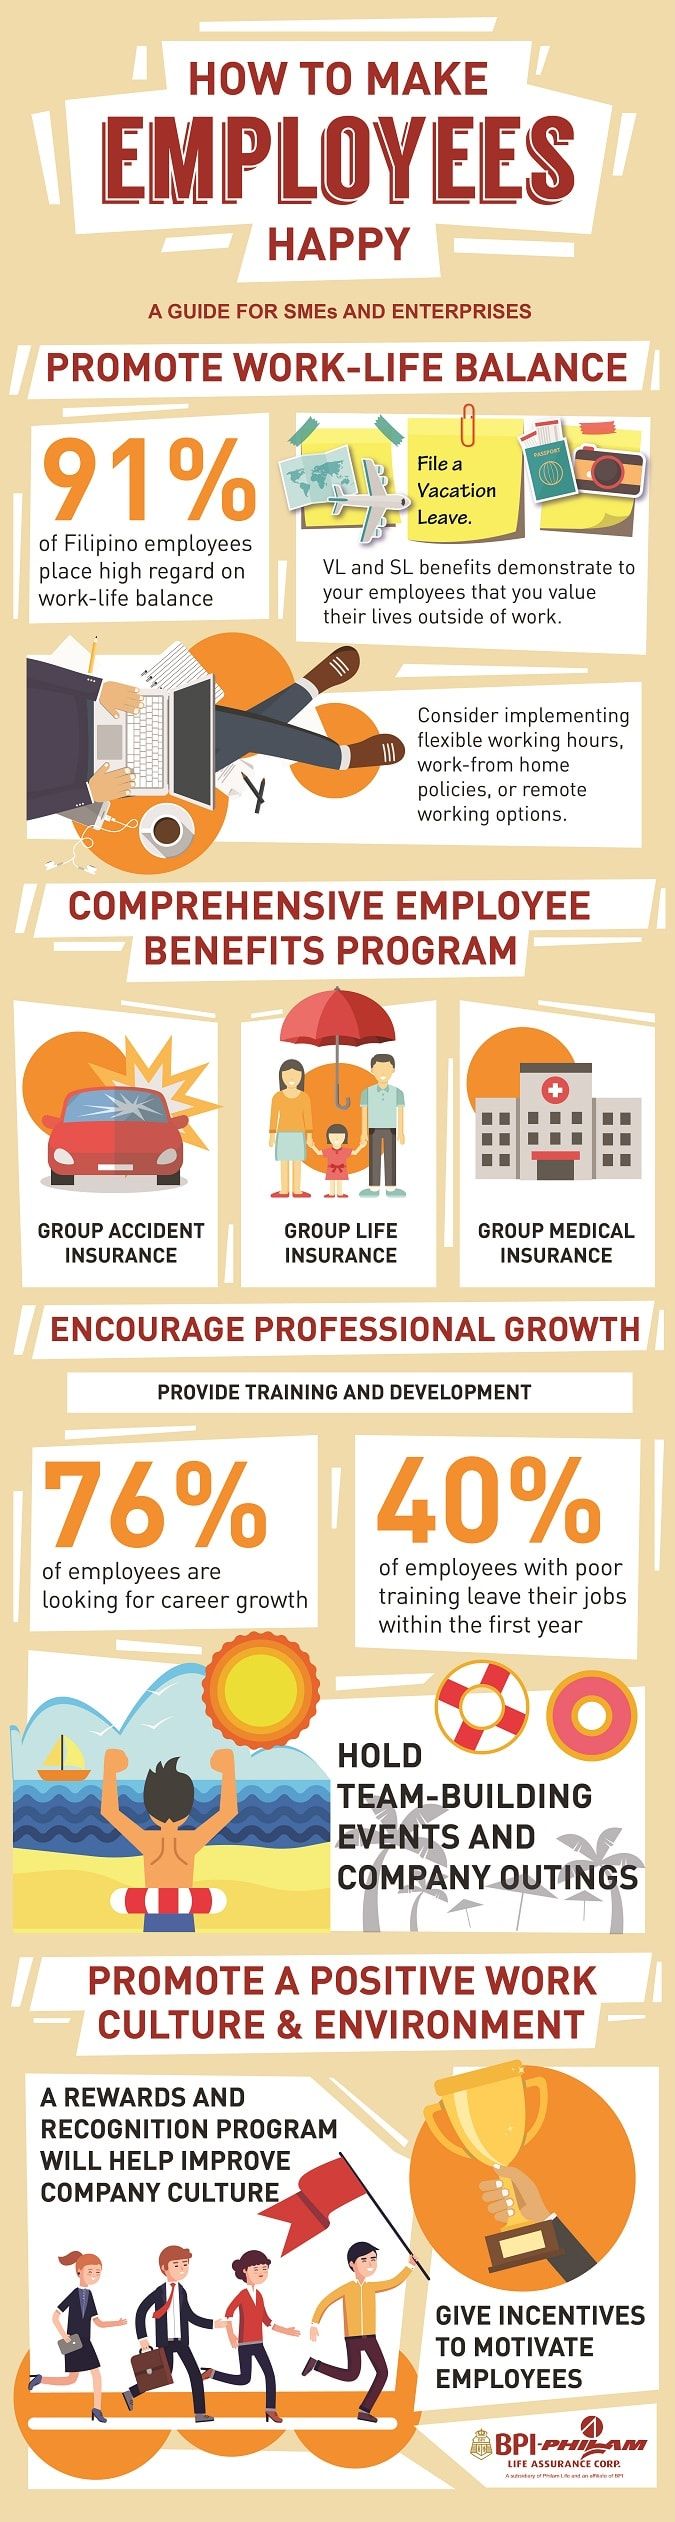 Managing the Happiness Curve of Employees - Infographic